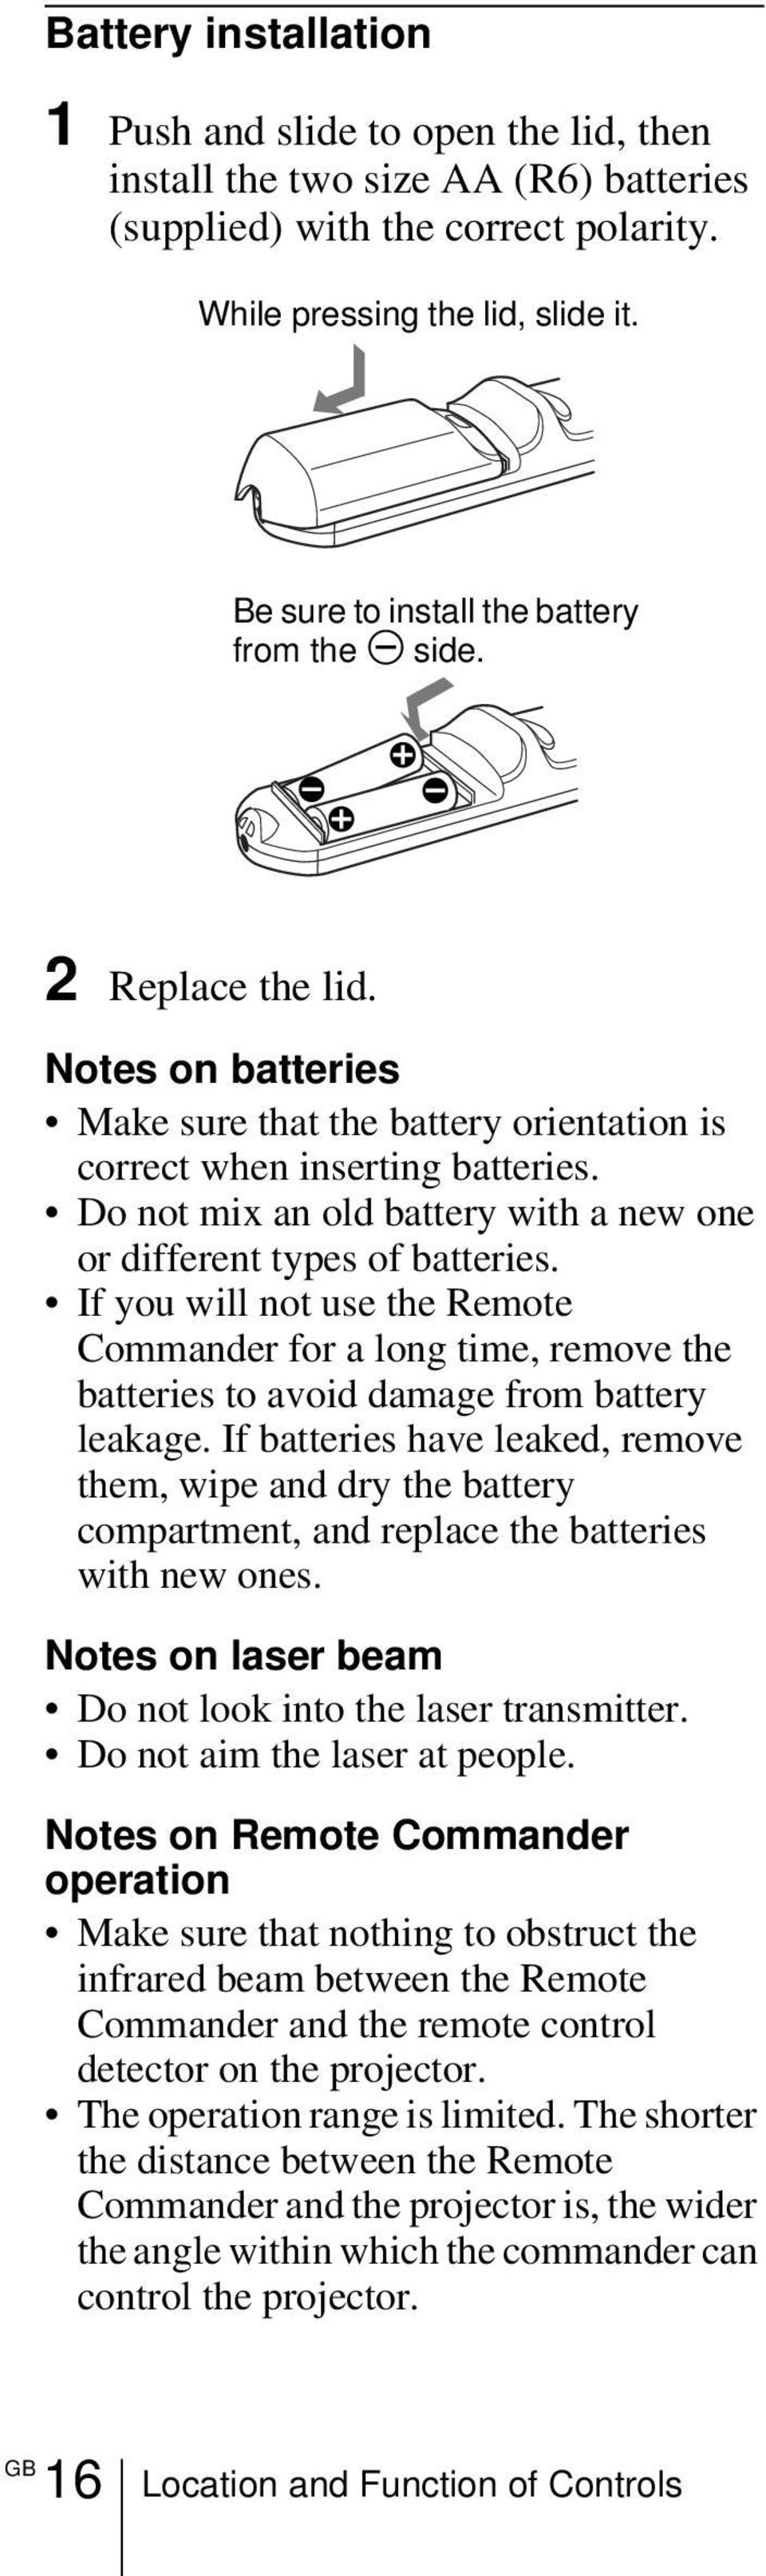 Do not mix an old battery with a new one or different types of batteries. If you will not use the Remote Commander for a long time, remove the batteries to avoid damage from battery leakage.